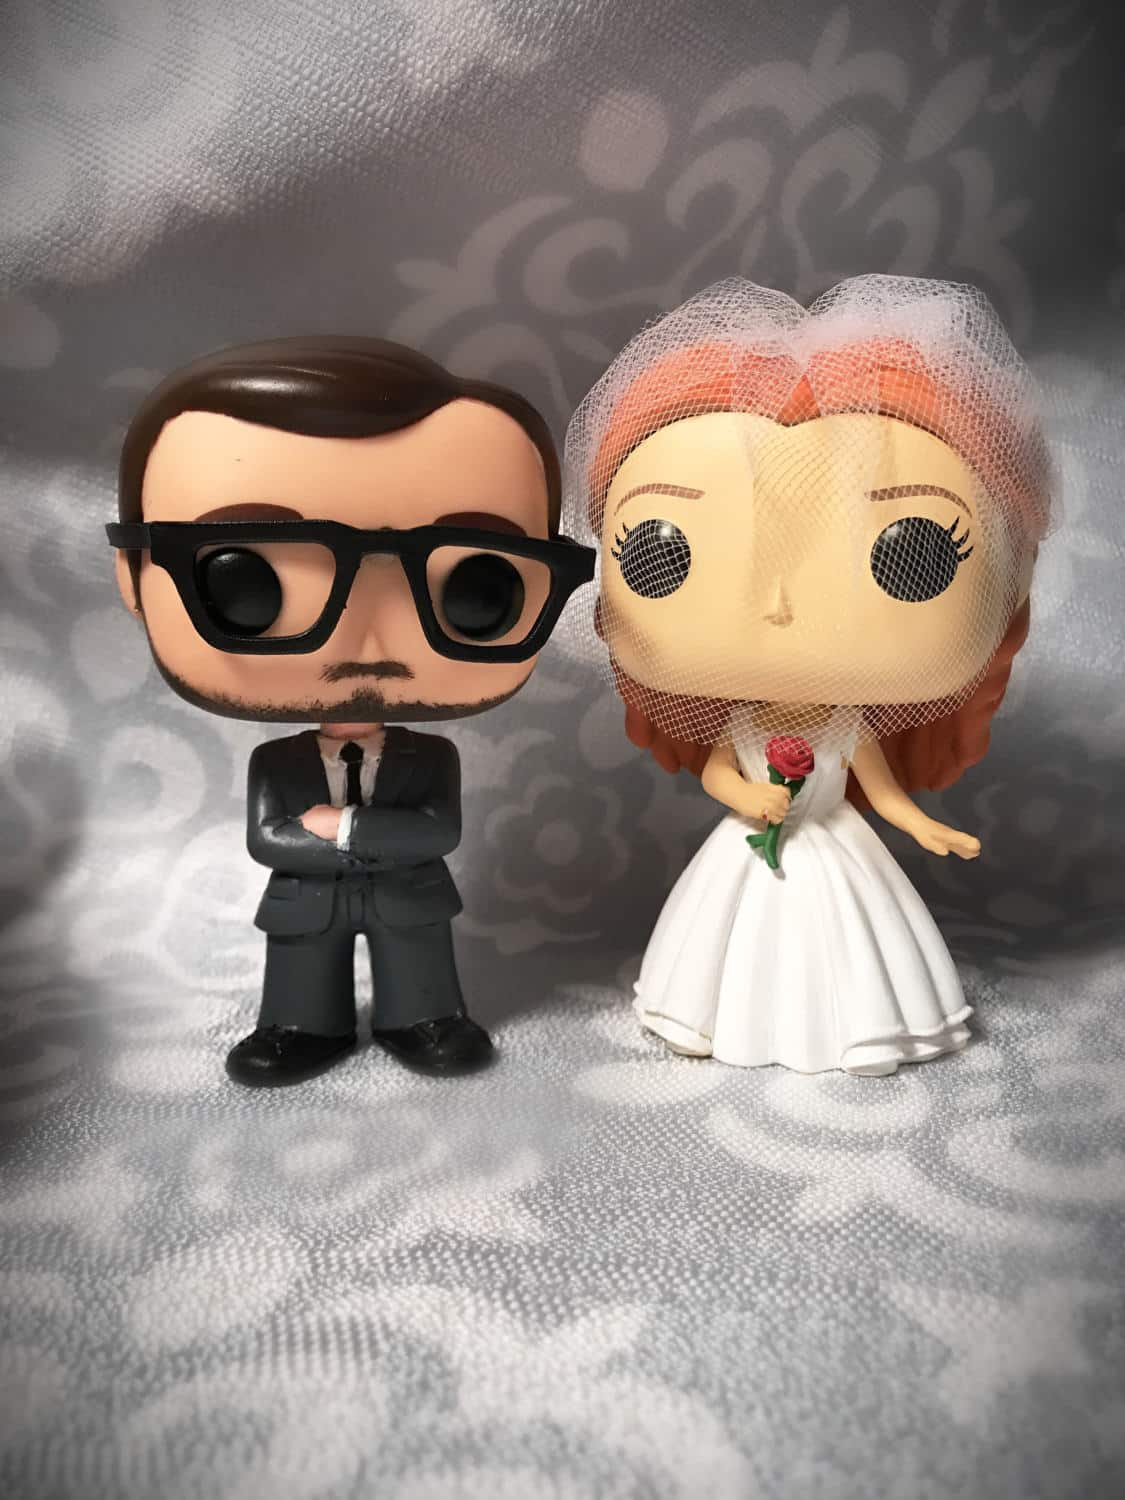 Custom Funko Pop Wedding Cake Topper